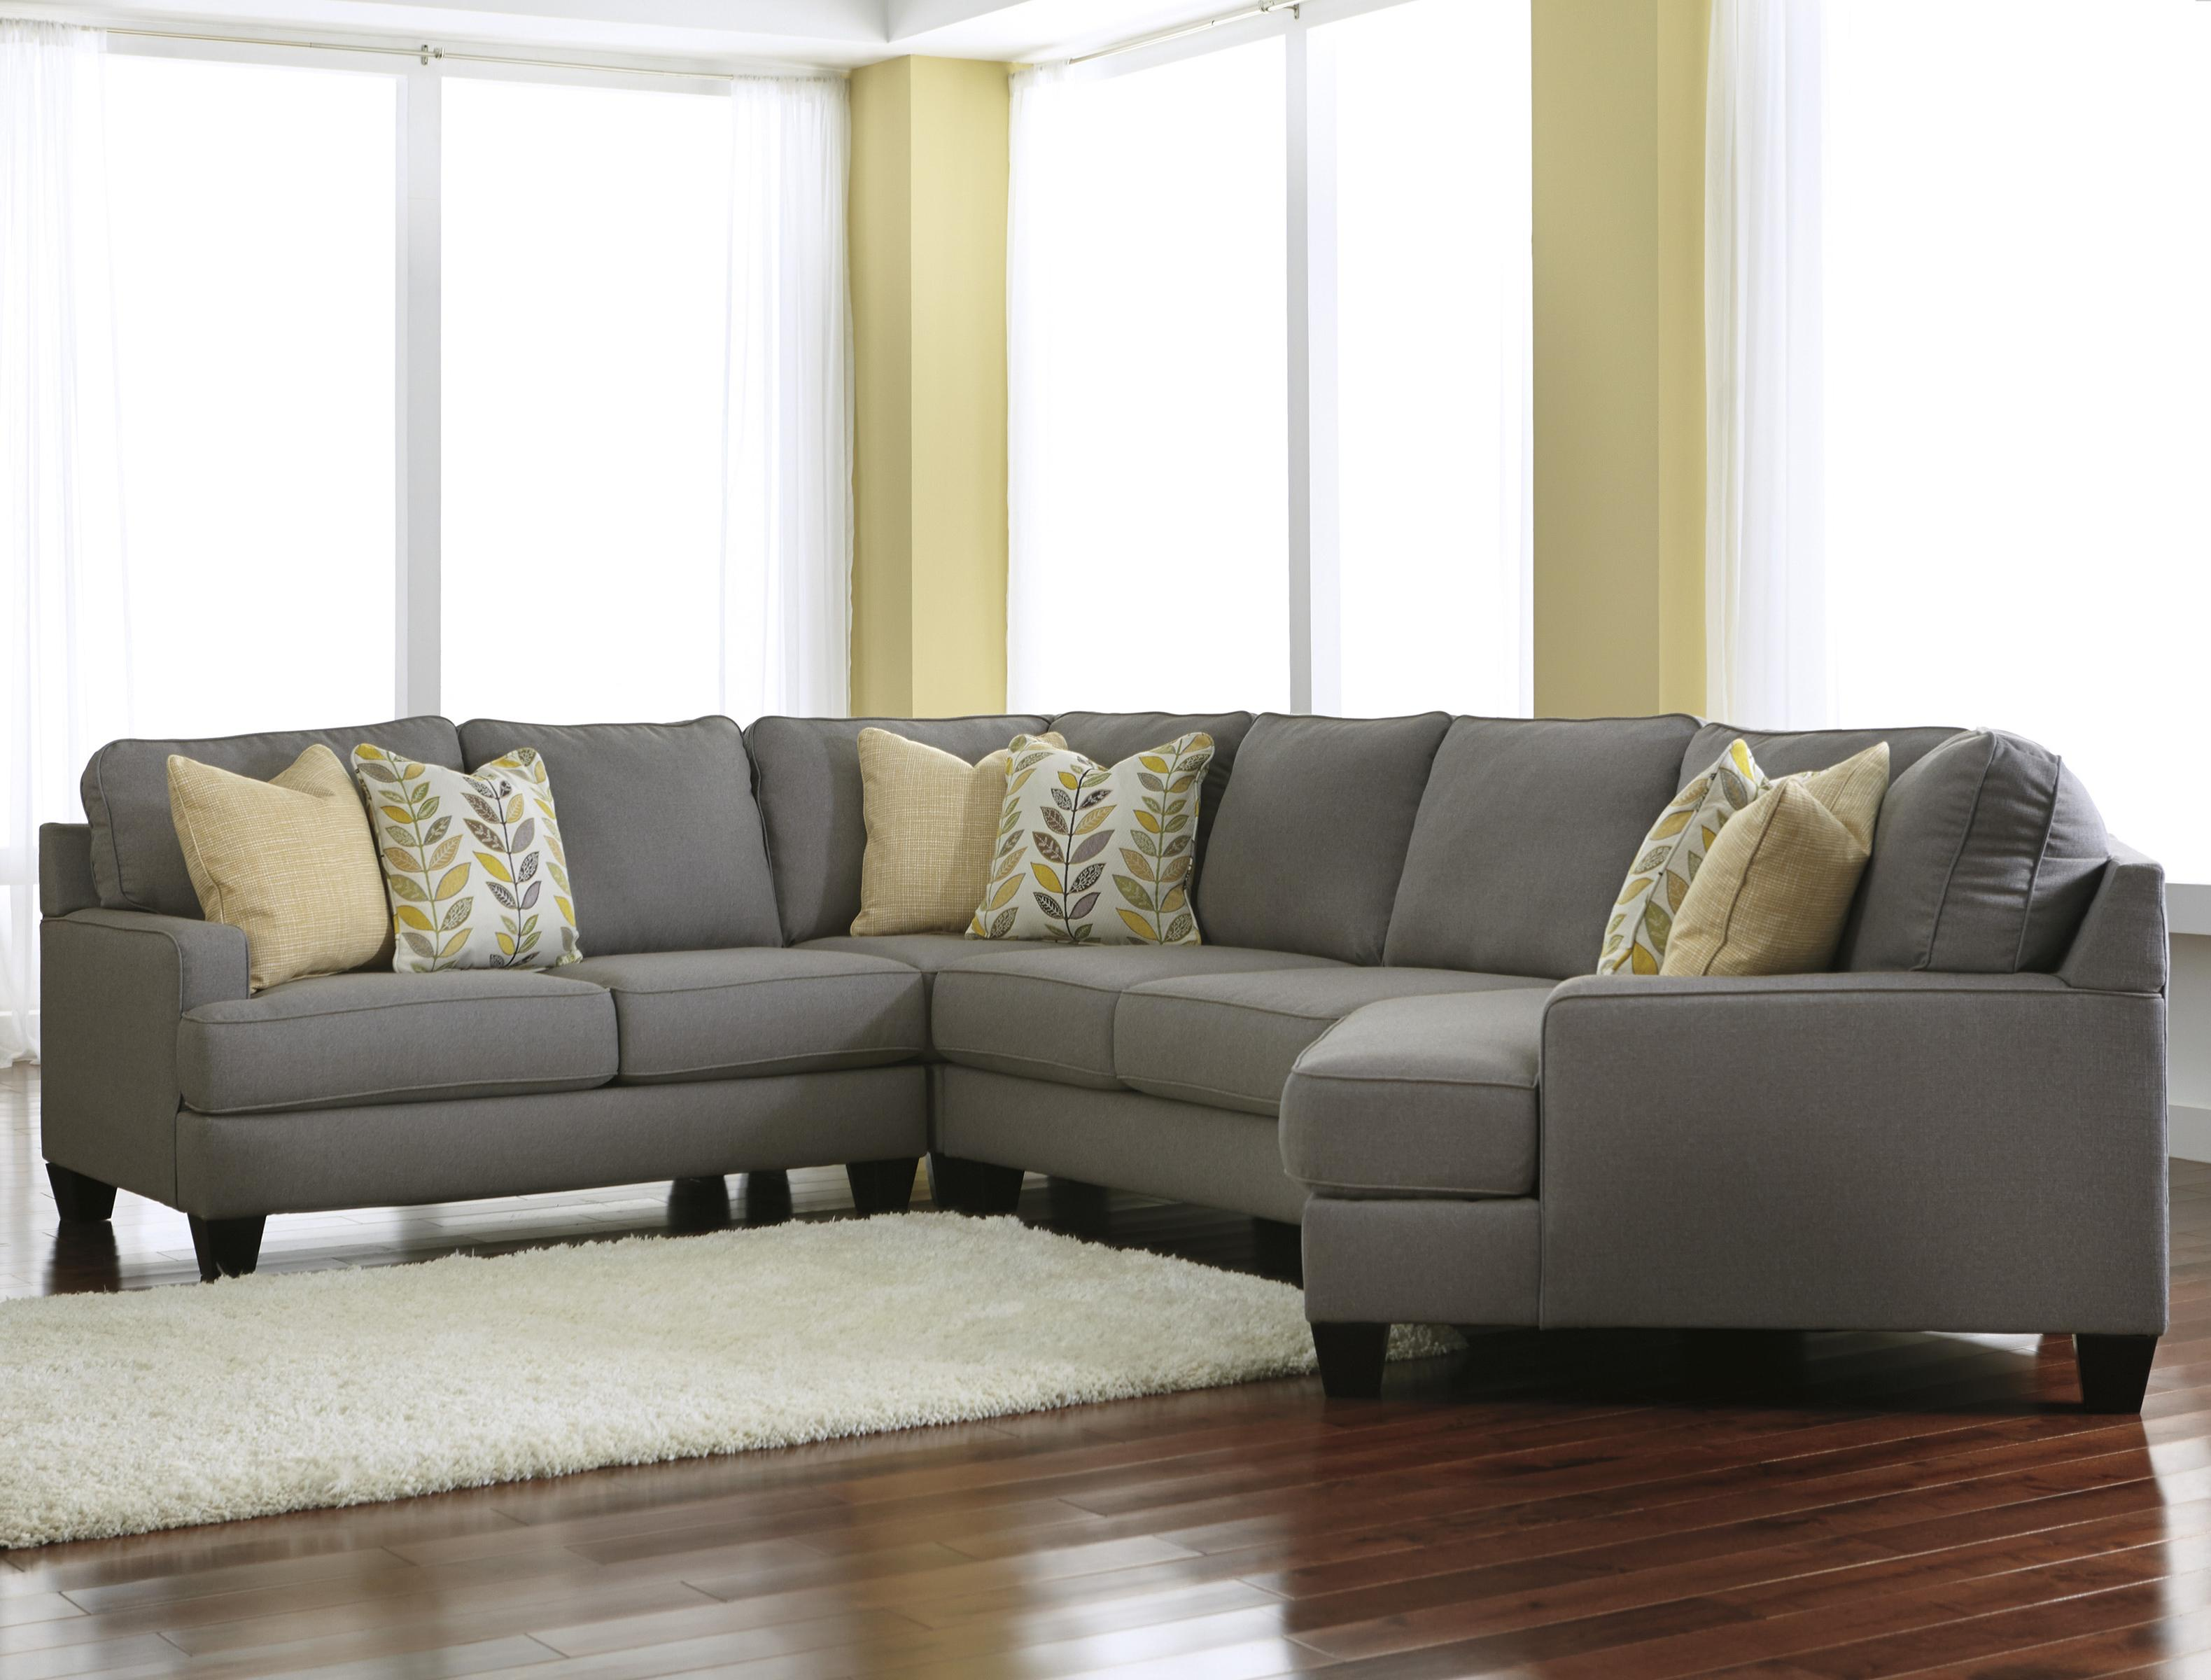 threshold modern cuddler signature piece sectional with chamberly left width sofa design products height item by ashley alloy trim